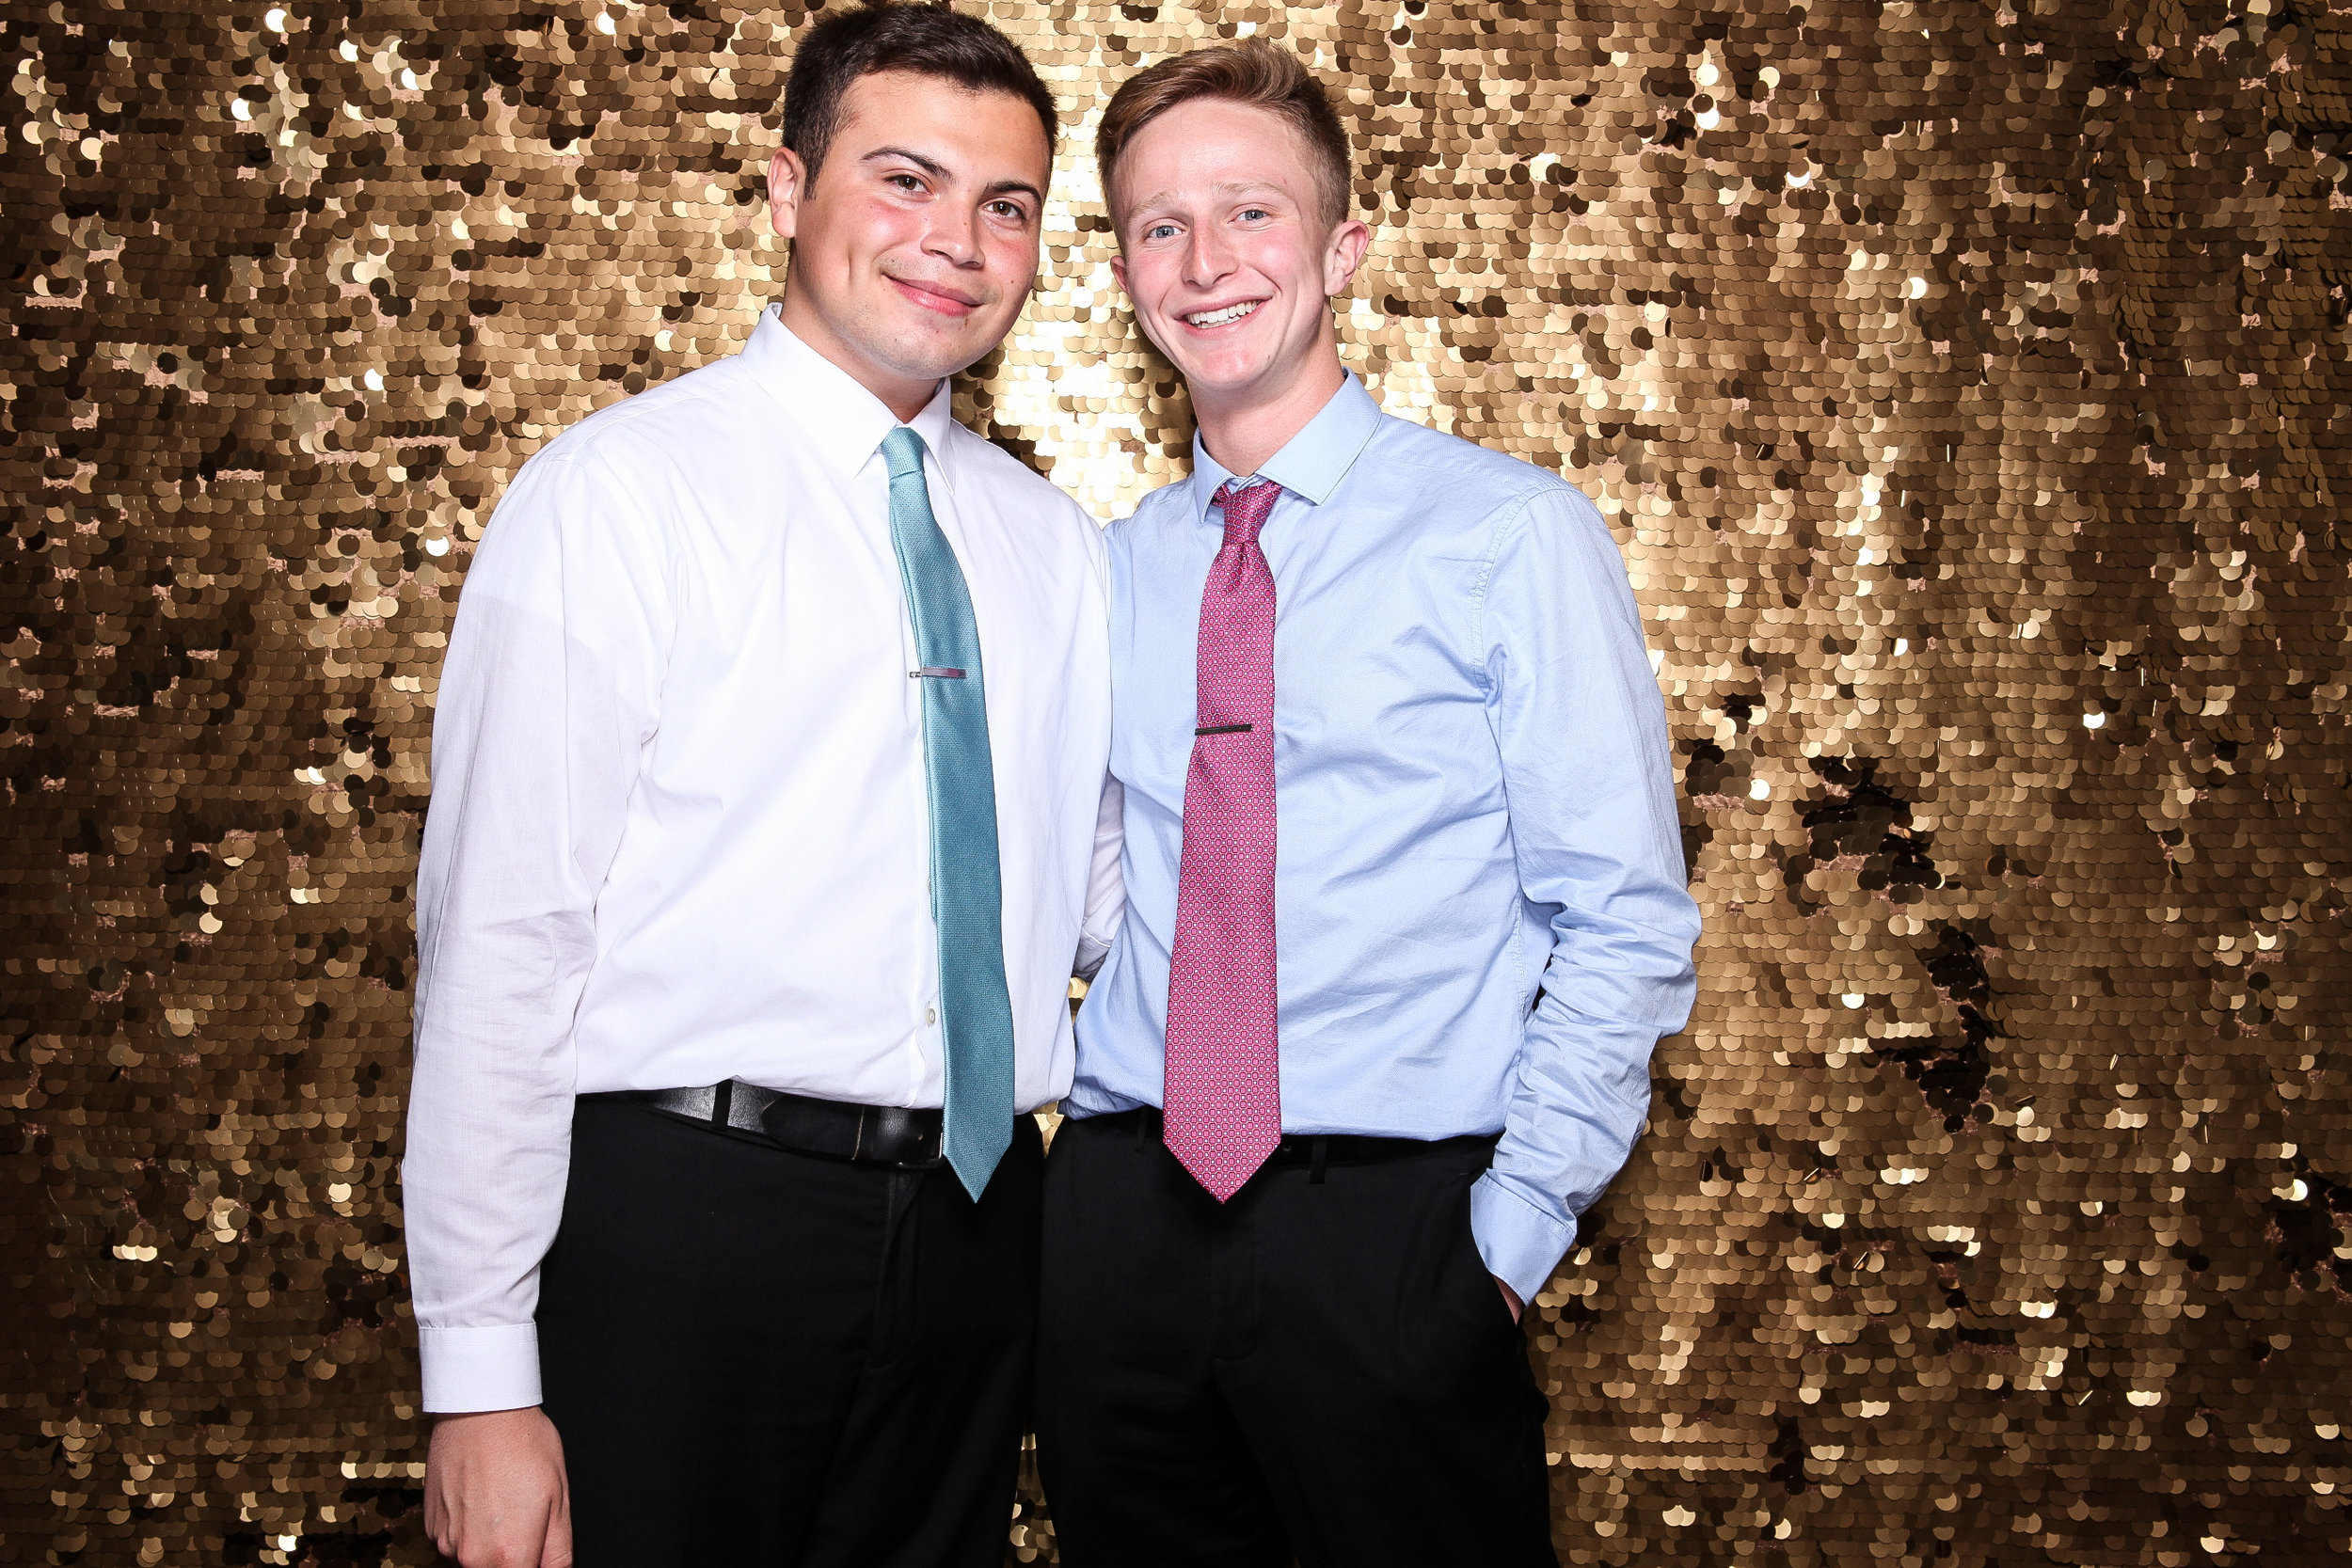 20190503_Adelphi_Senior_Formal-346.jpg